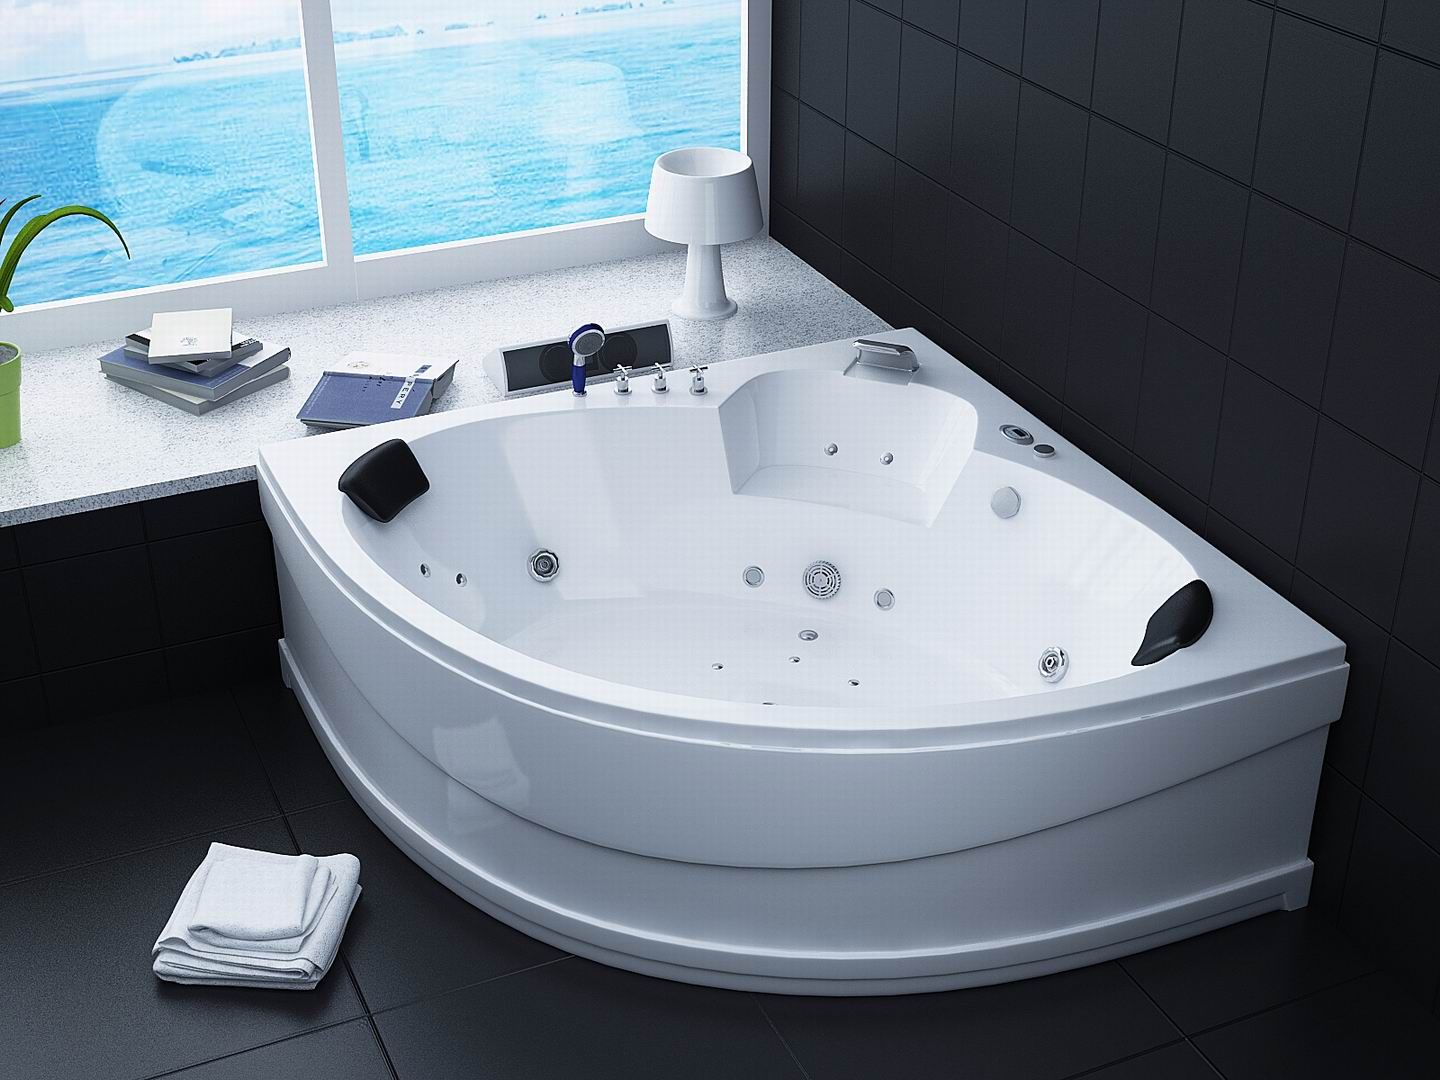 Bathtubs China Jacuzzi Bathtub Mt Large Image For